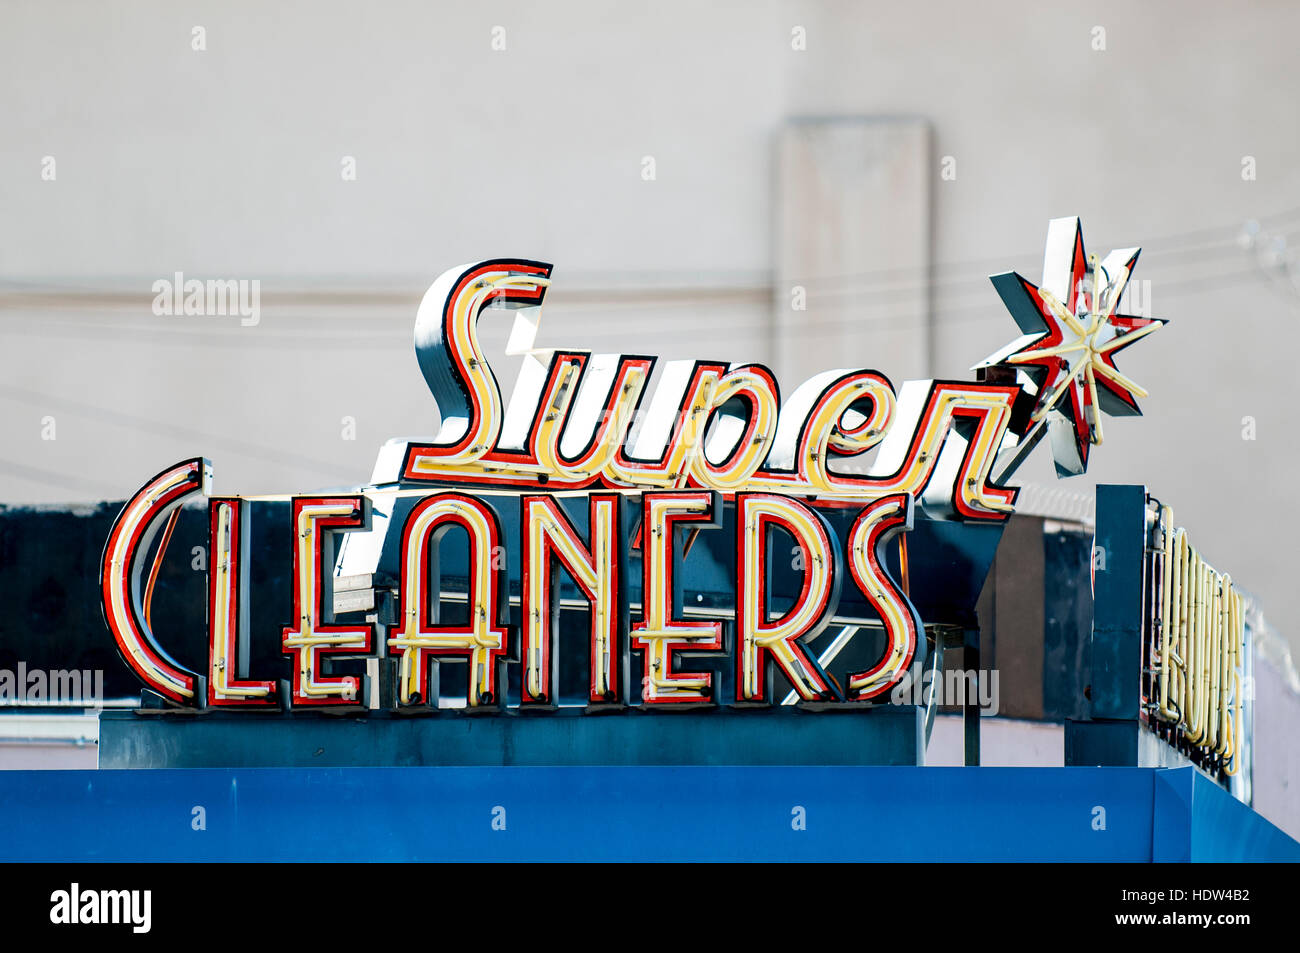 Mid-Century Super Cleaners sign Las Vegas, Nevada. - Stock Image